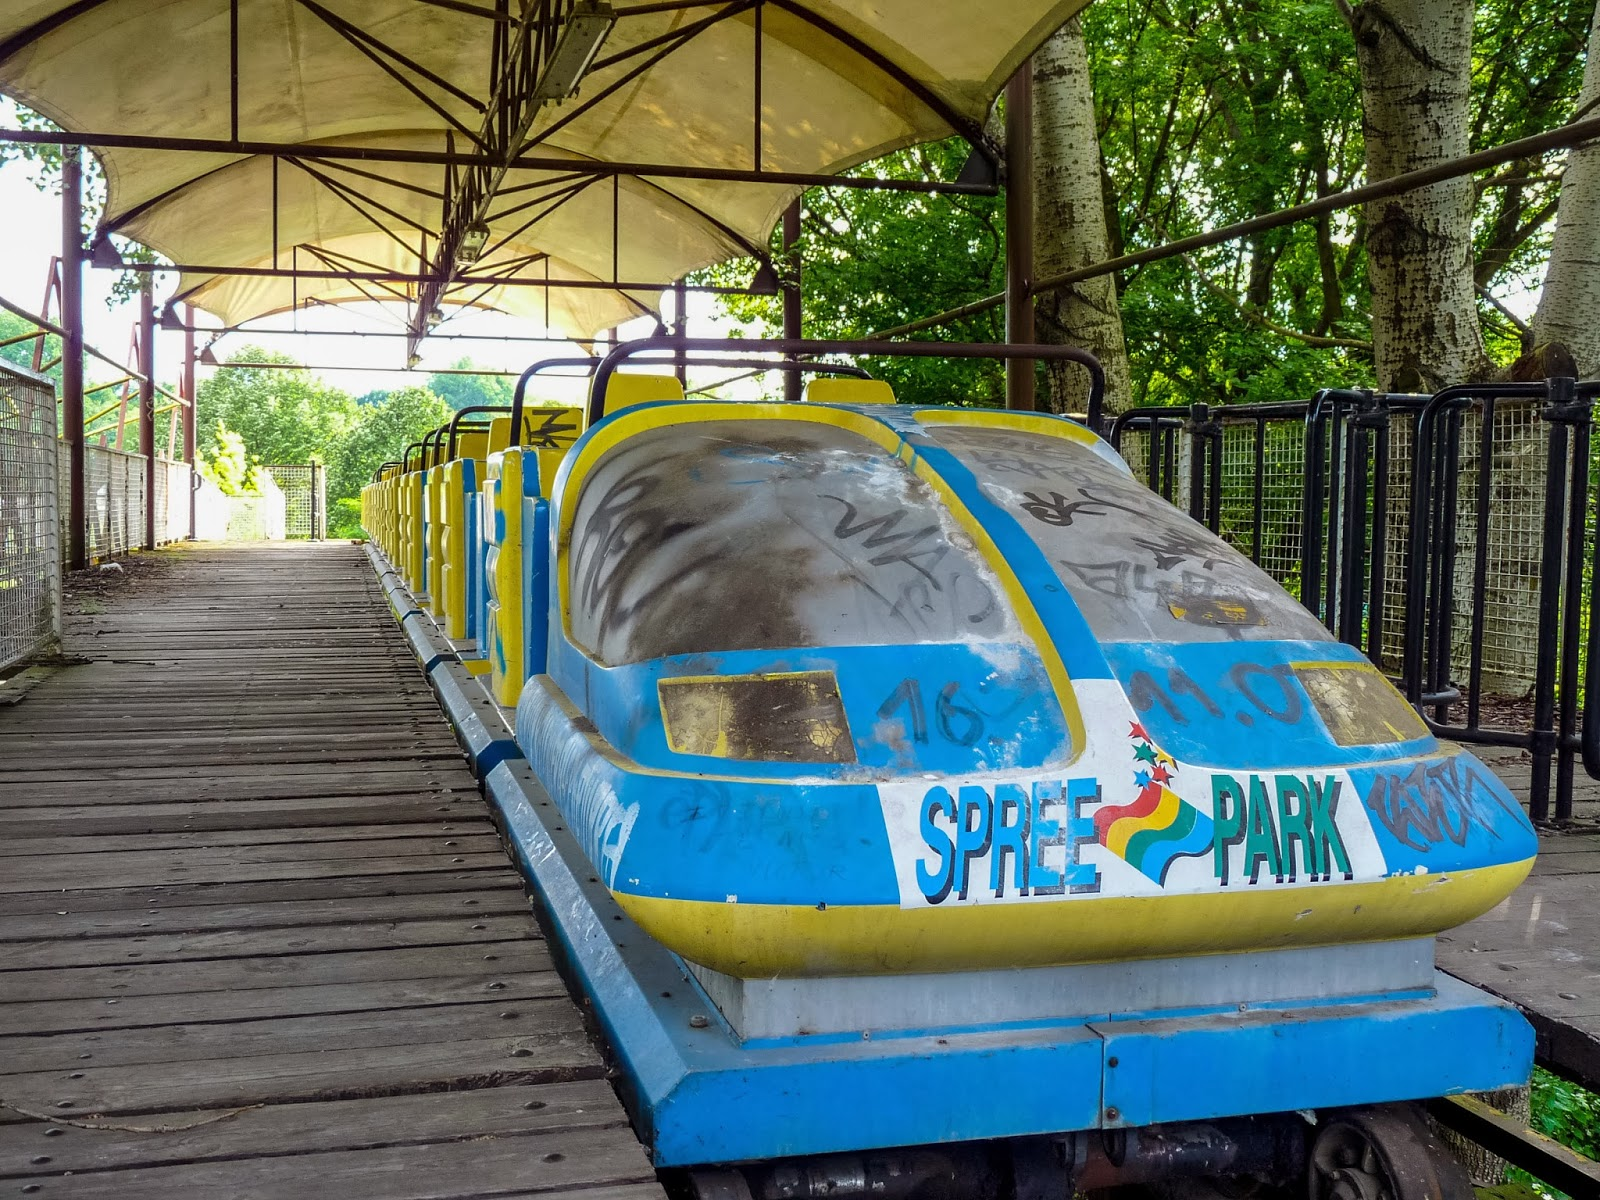 Spreepark_Abandoned_Amusement_Park_Berlin-1020070